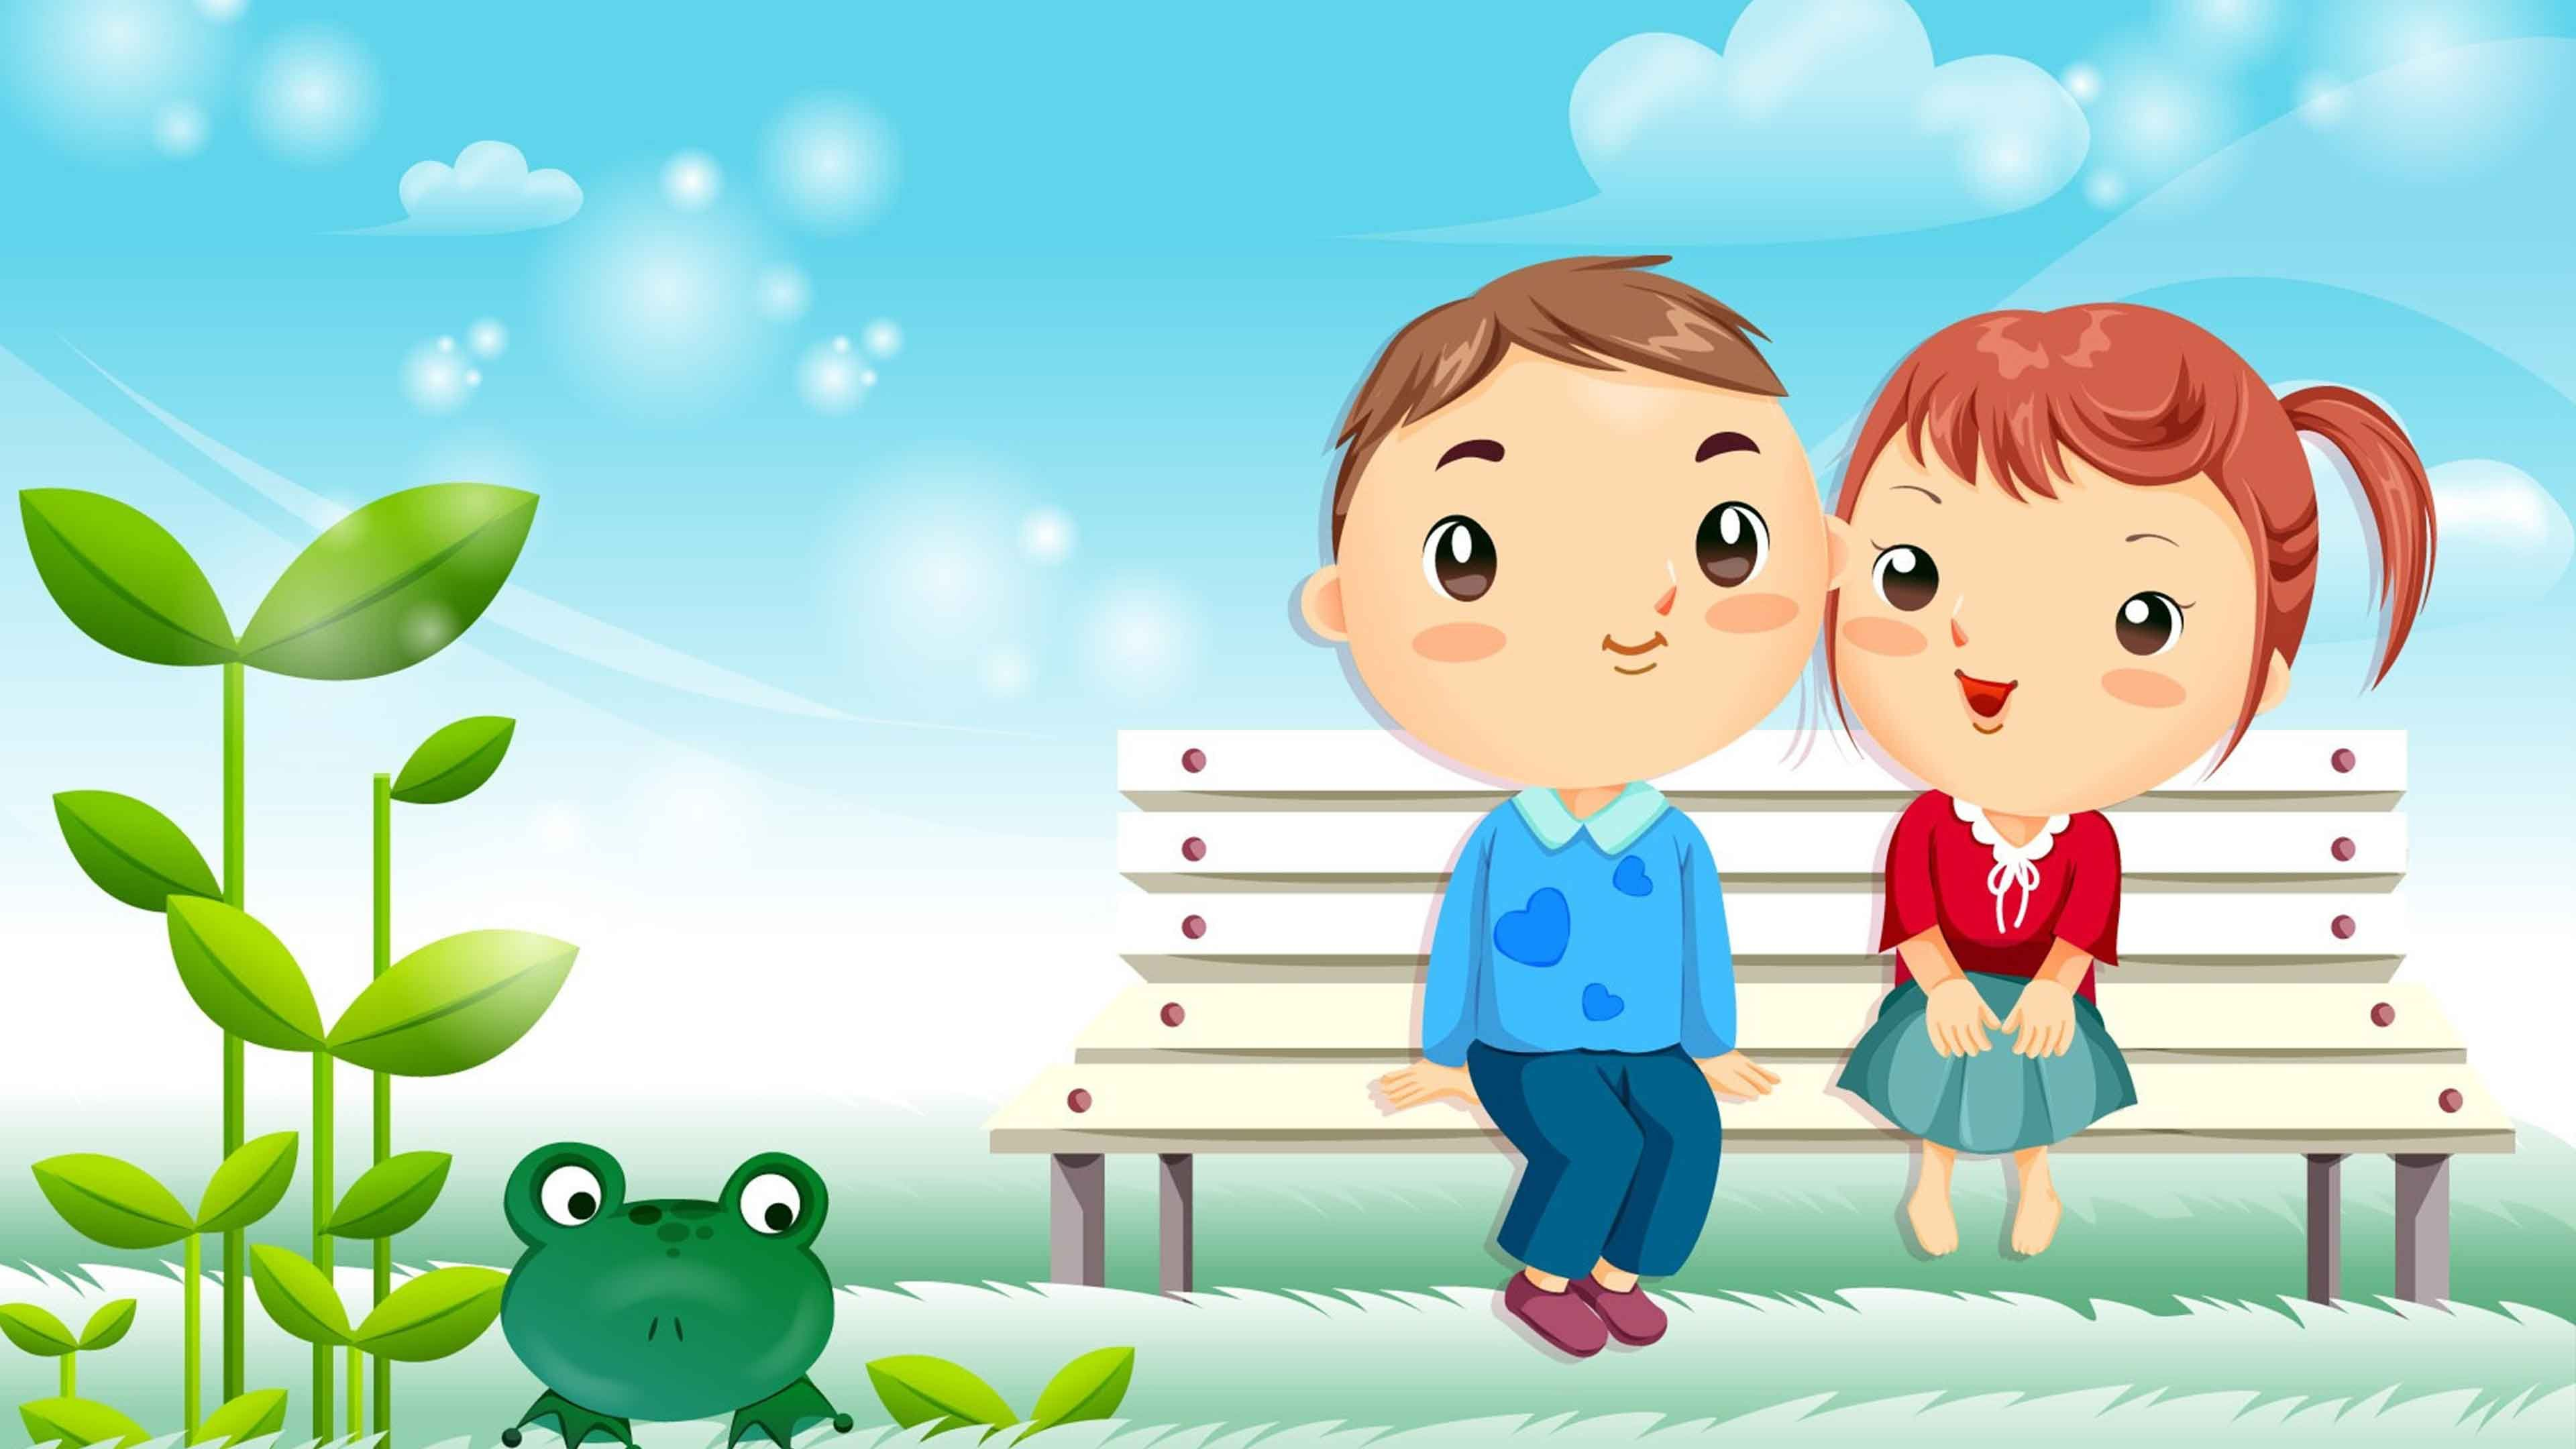 Most Inspiring Love Couple Cartoon HD Wallpaper Download - dbf3b518d98d1f17500fdbf104603532  Image_113110.jpg